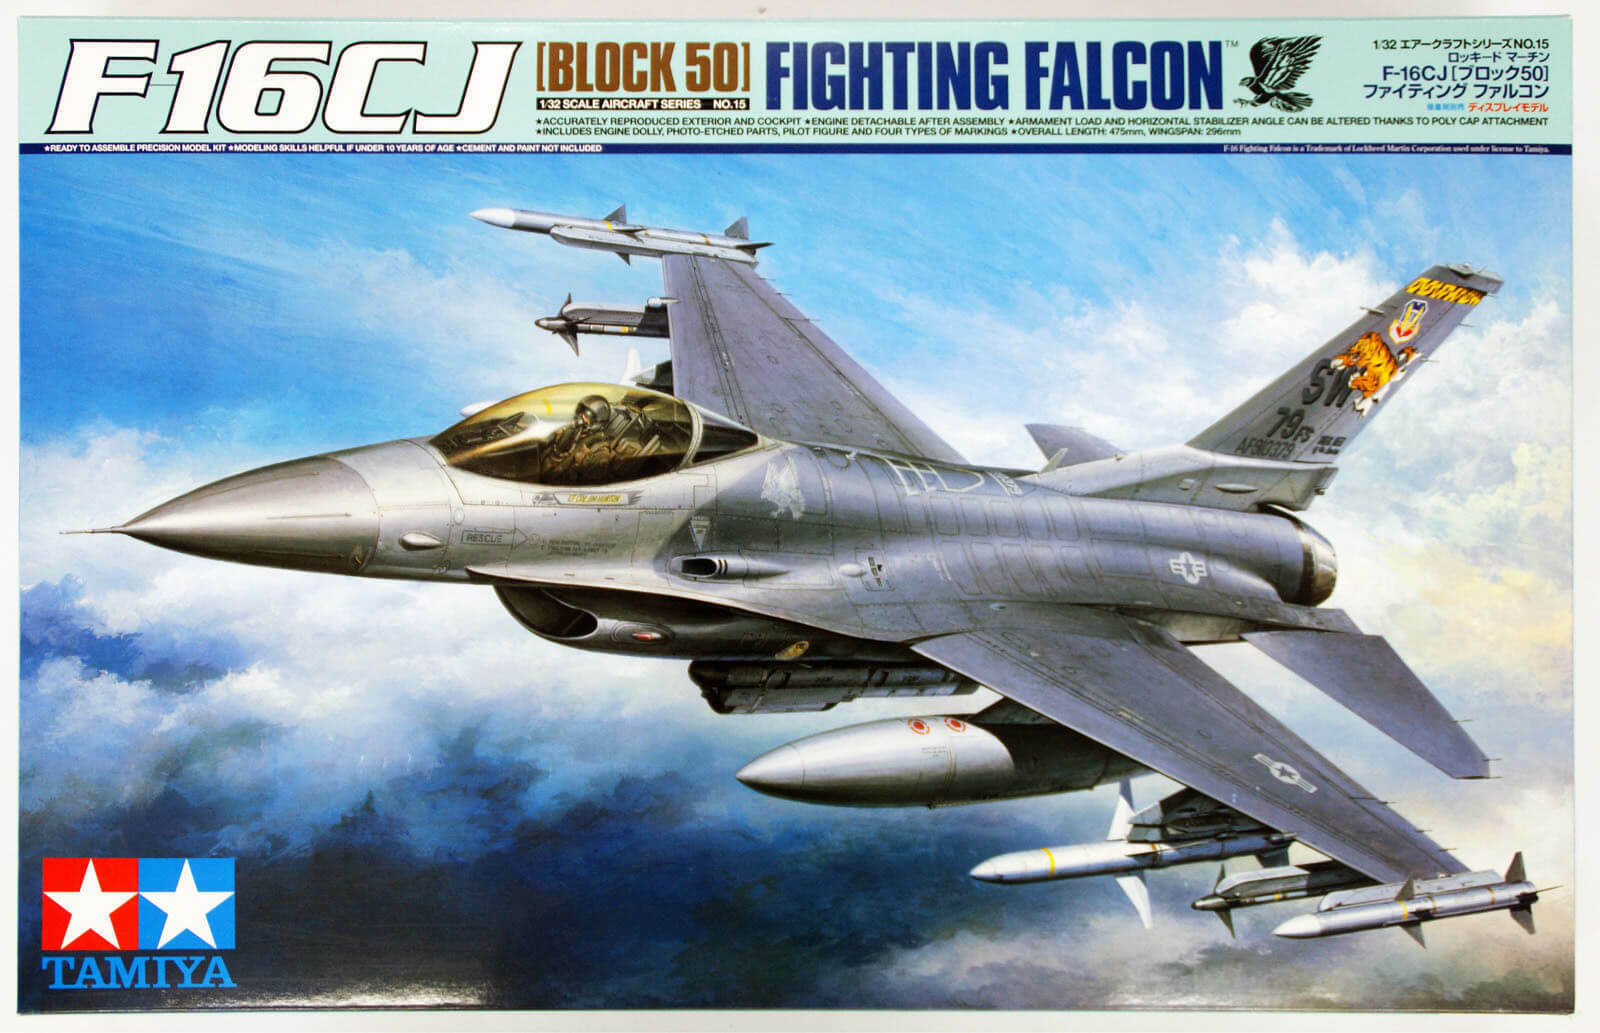 Tamiya 1 32 Scala F-16cj Fighting Falcon Modello Plastica Kit 60315 Tam60315